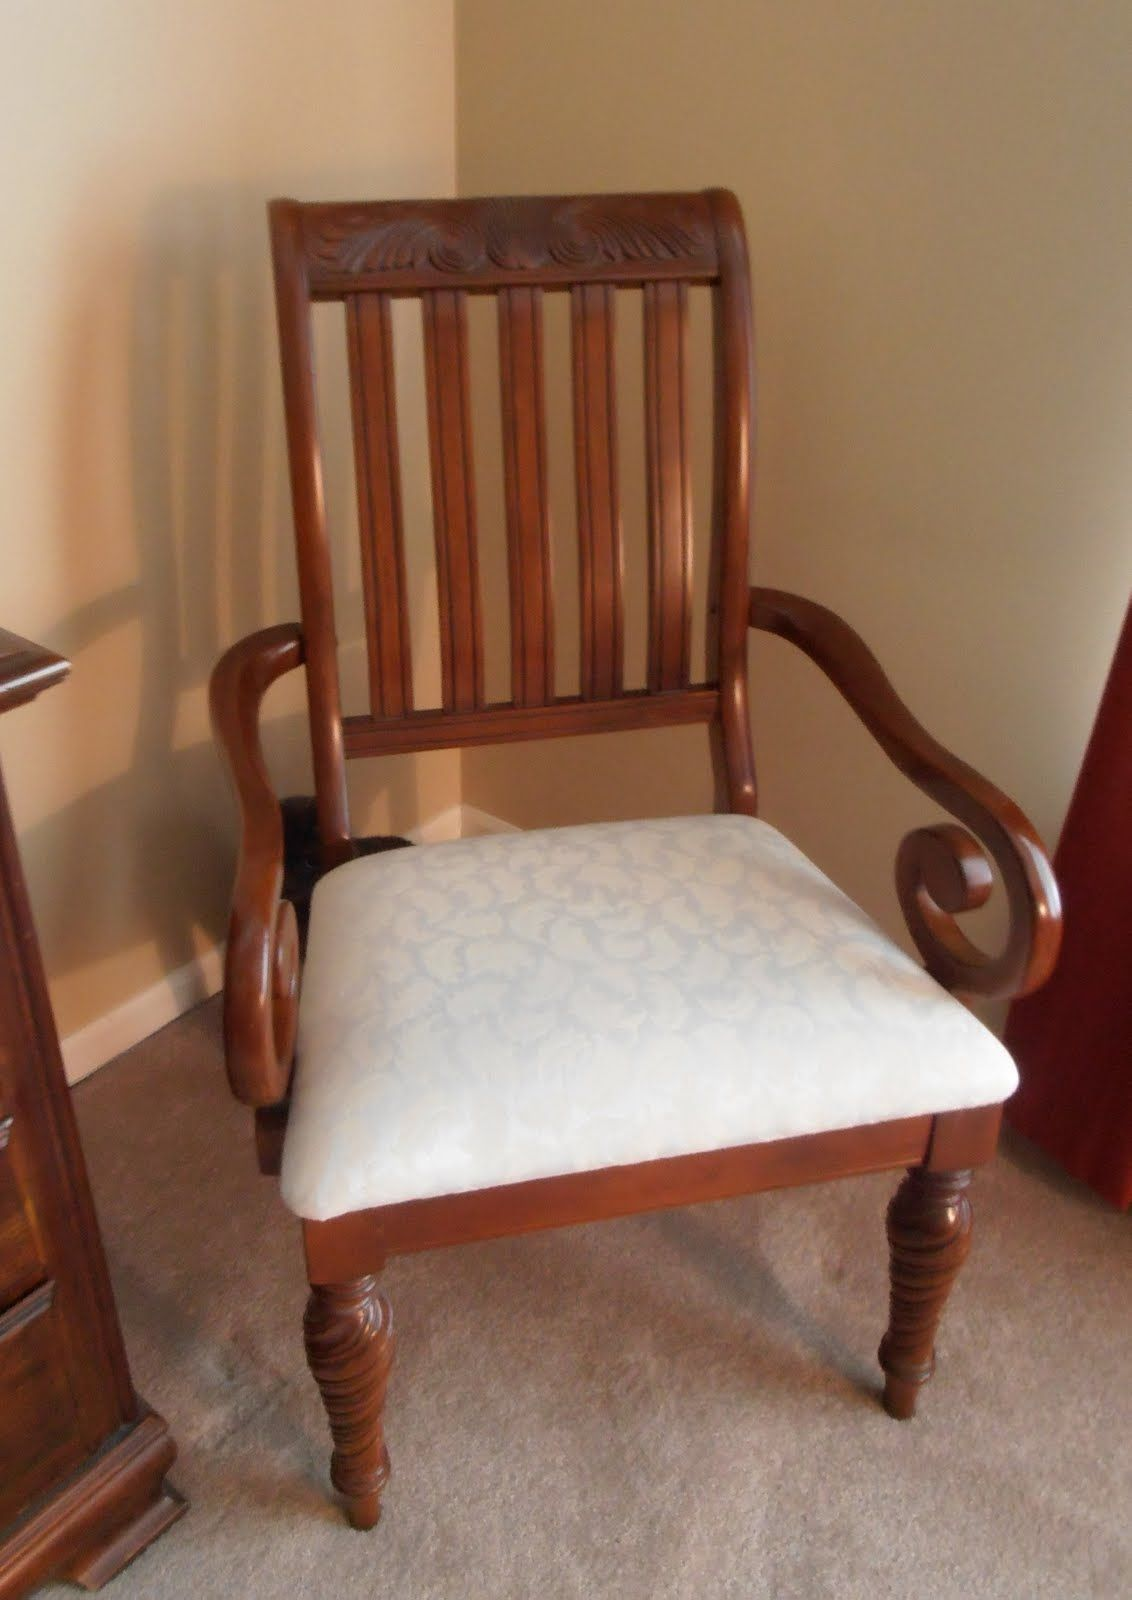 New Seat Cushions for Dining Room Chairs | Dining room chair ...